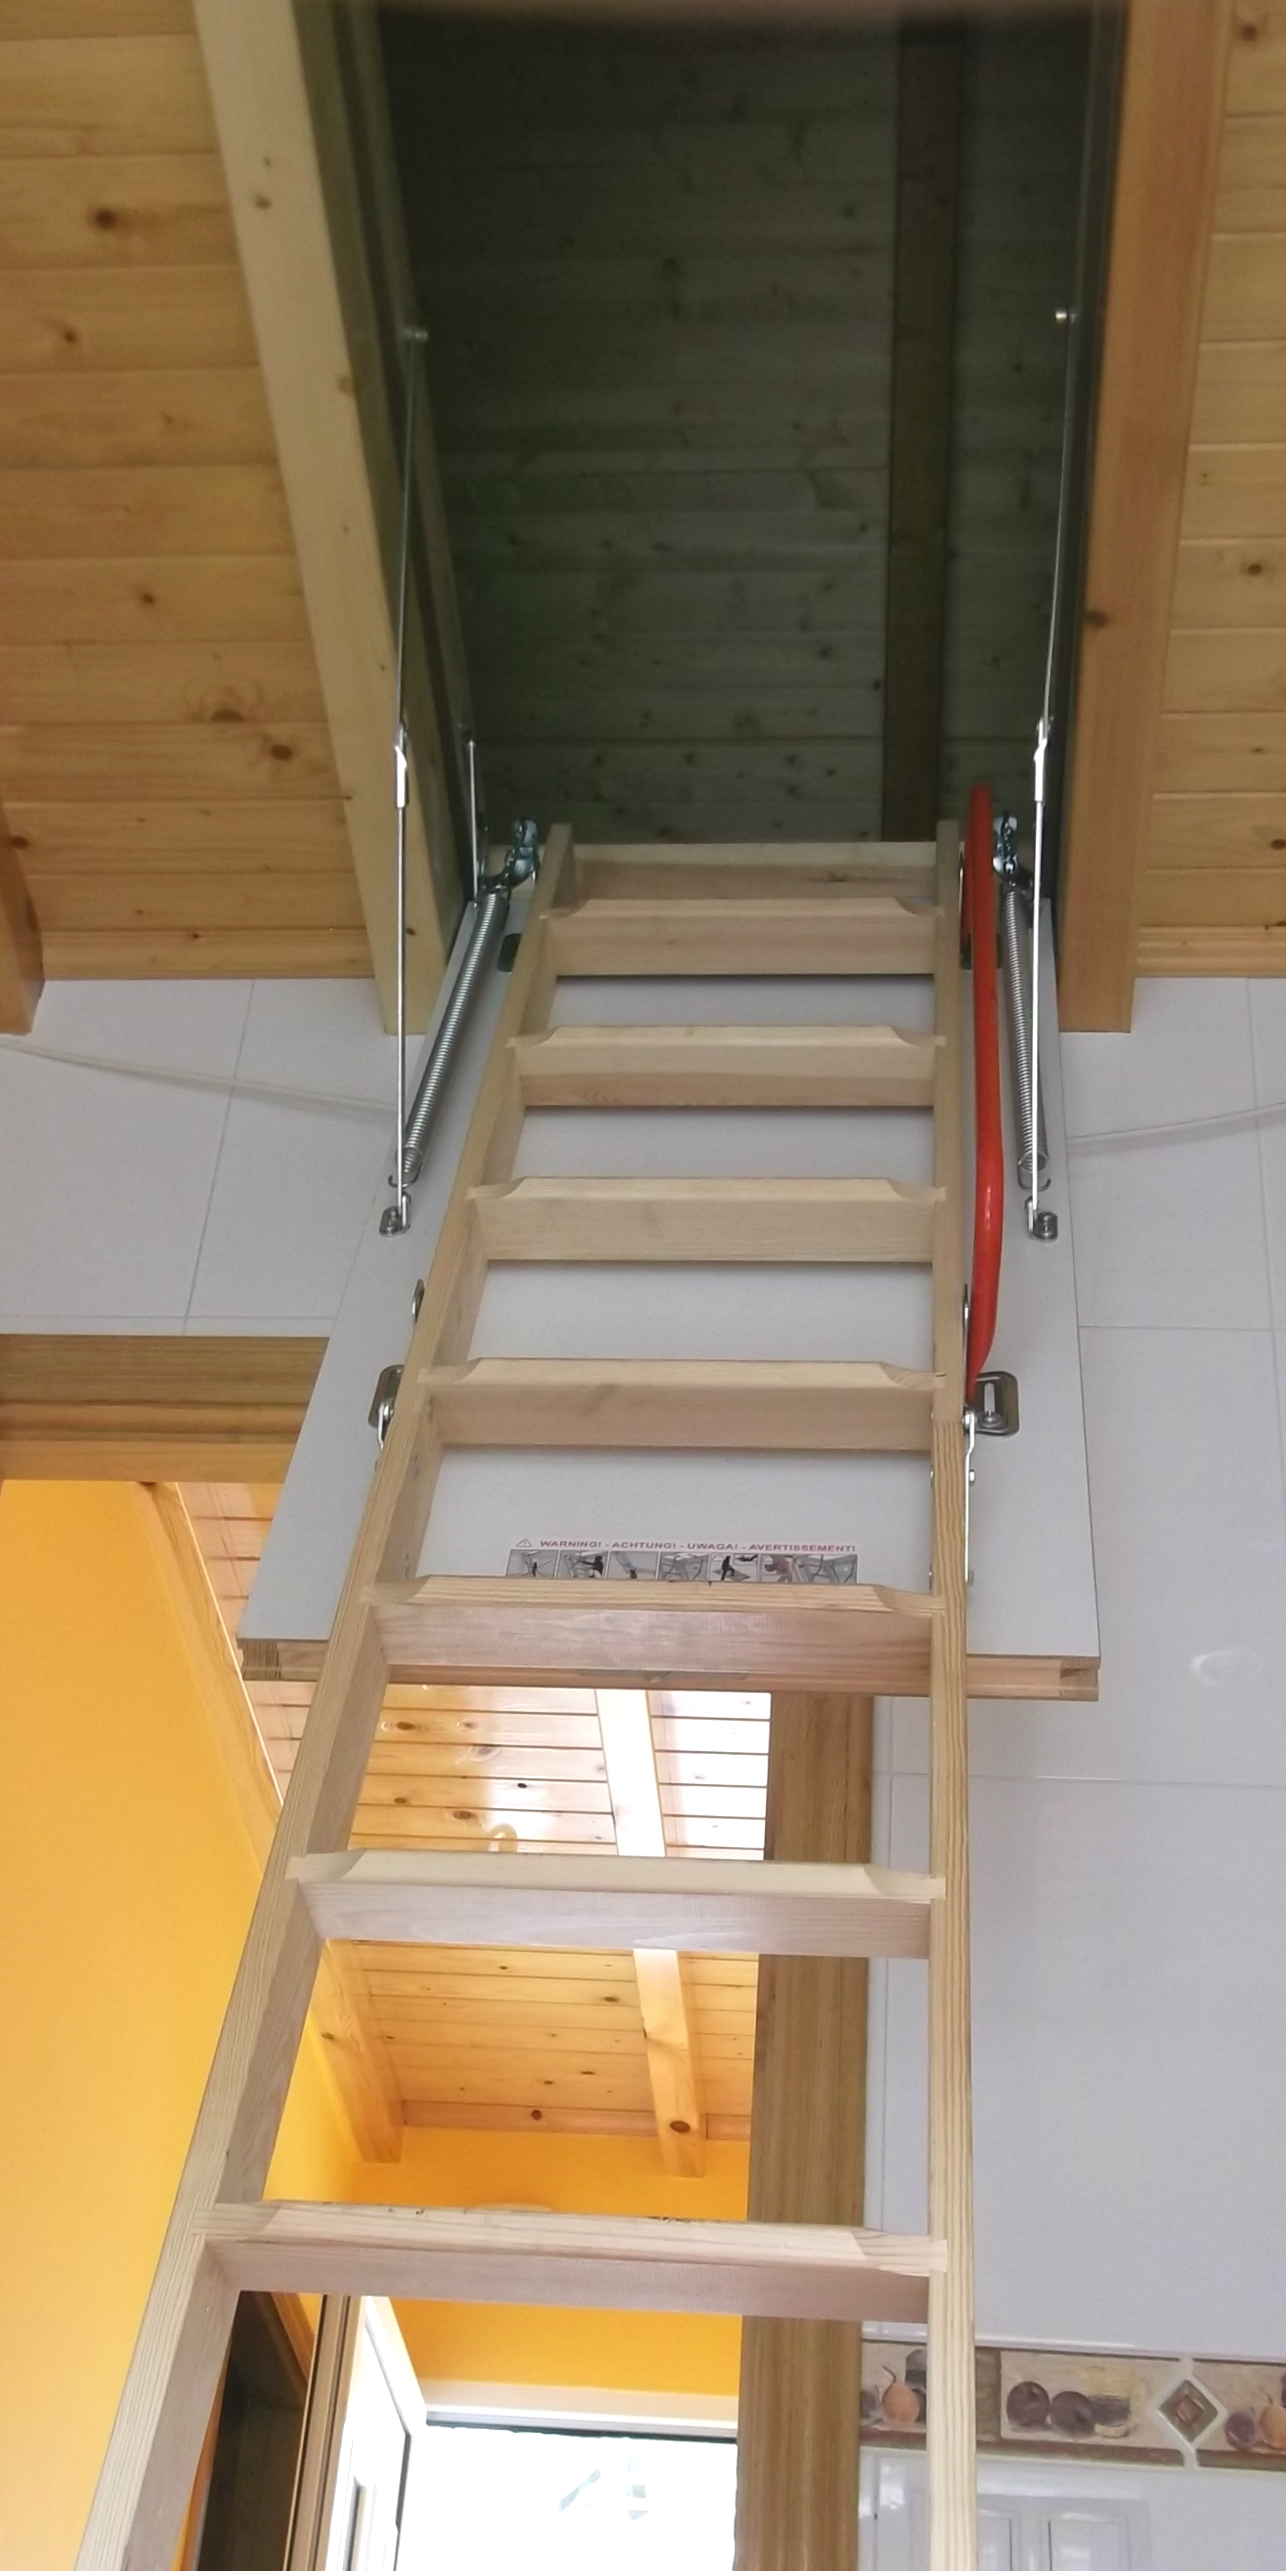 Escaleras para buhardillas plegables awesome escalera plegable y corrediza youtube escaleras - Escaleras para buhardillas plegables ...